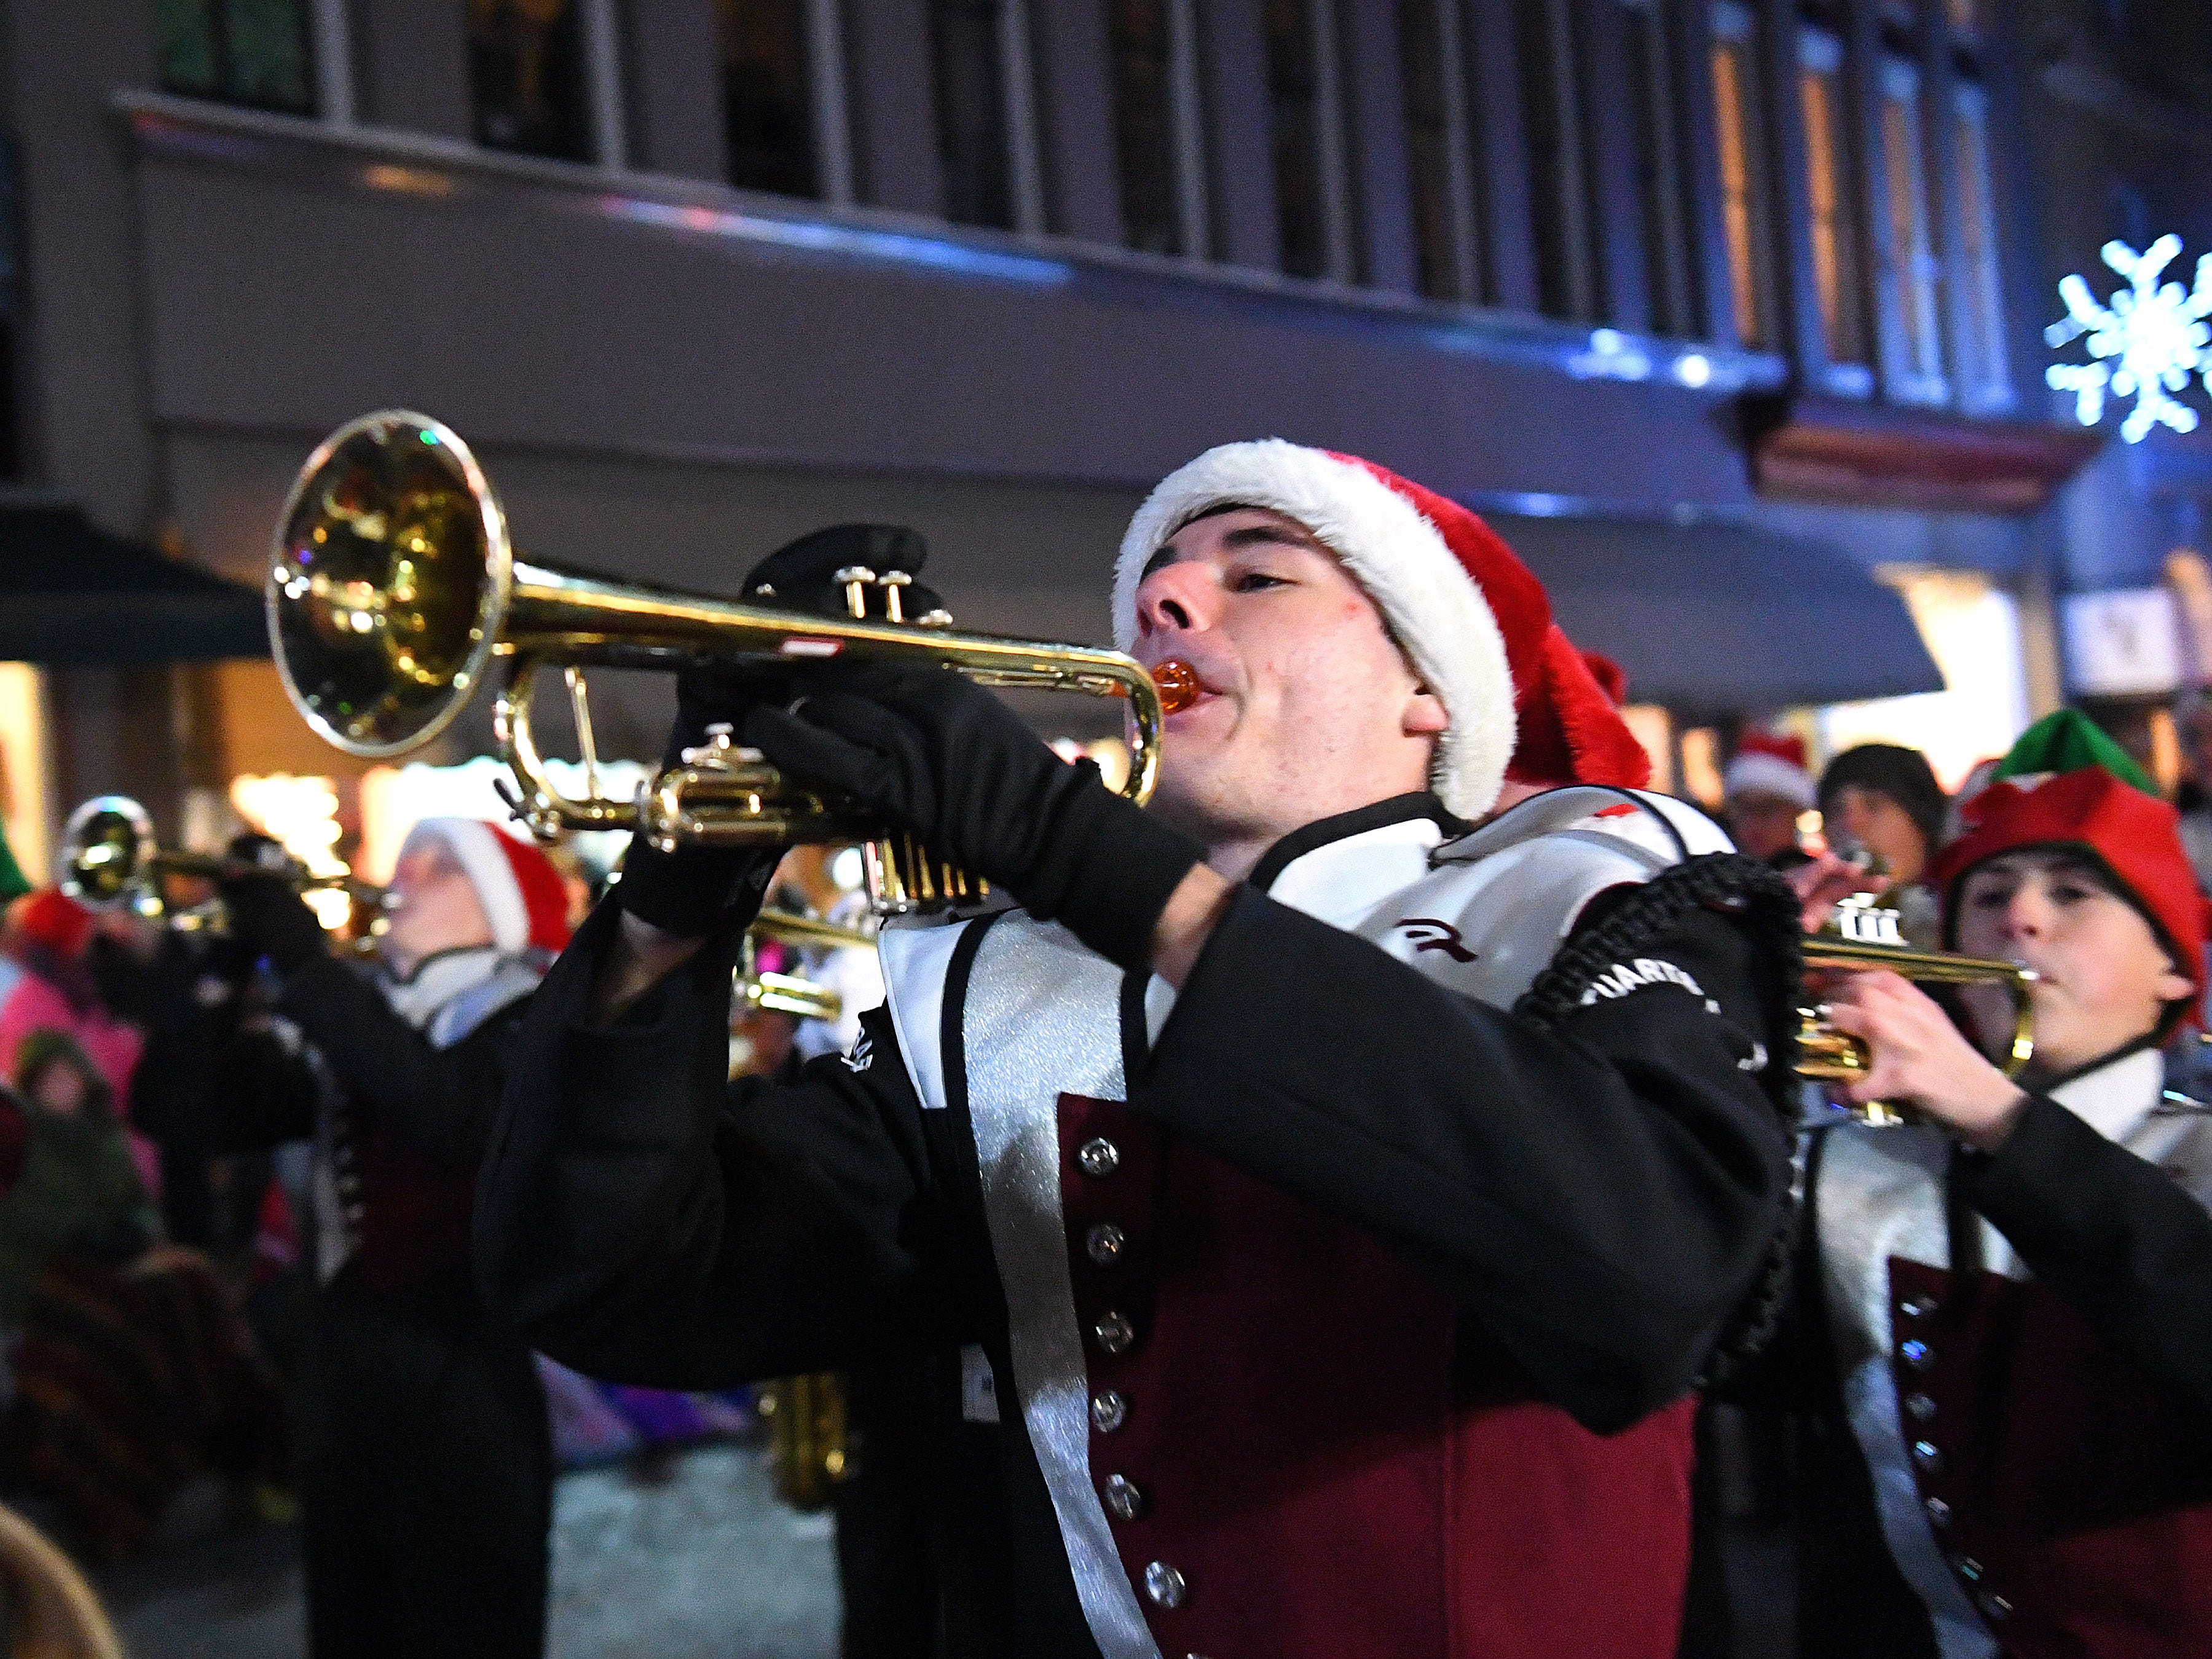 The Stuarts Draft High School marching band performs during the Staunton Christmas Parade on Monday, Nov. 26, 2018.